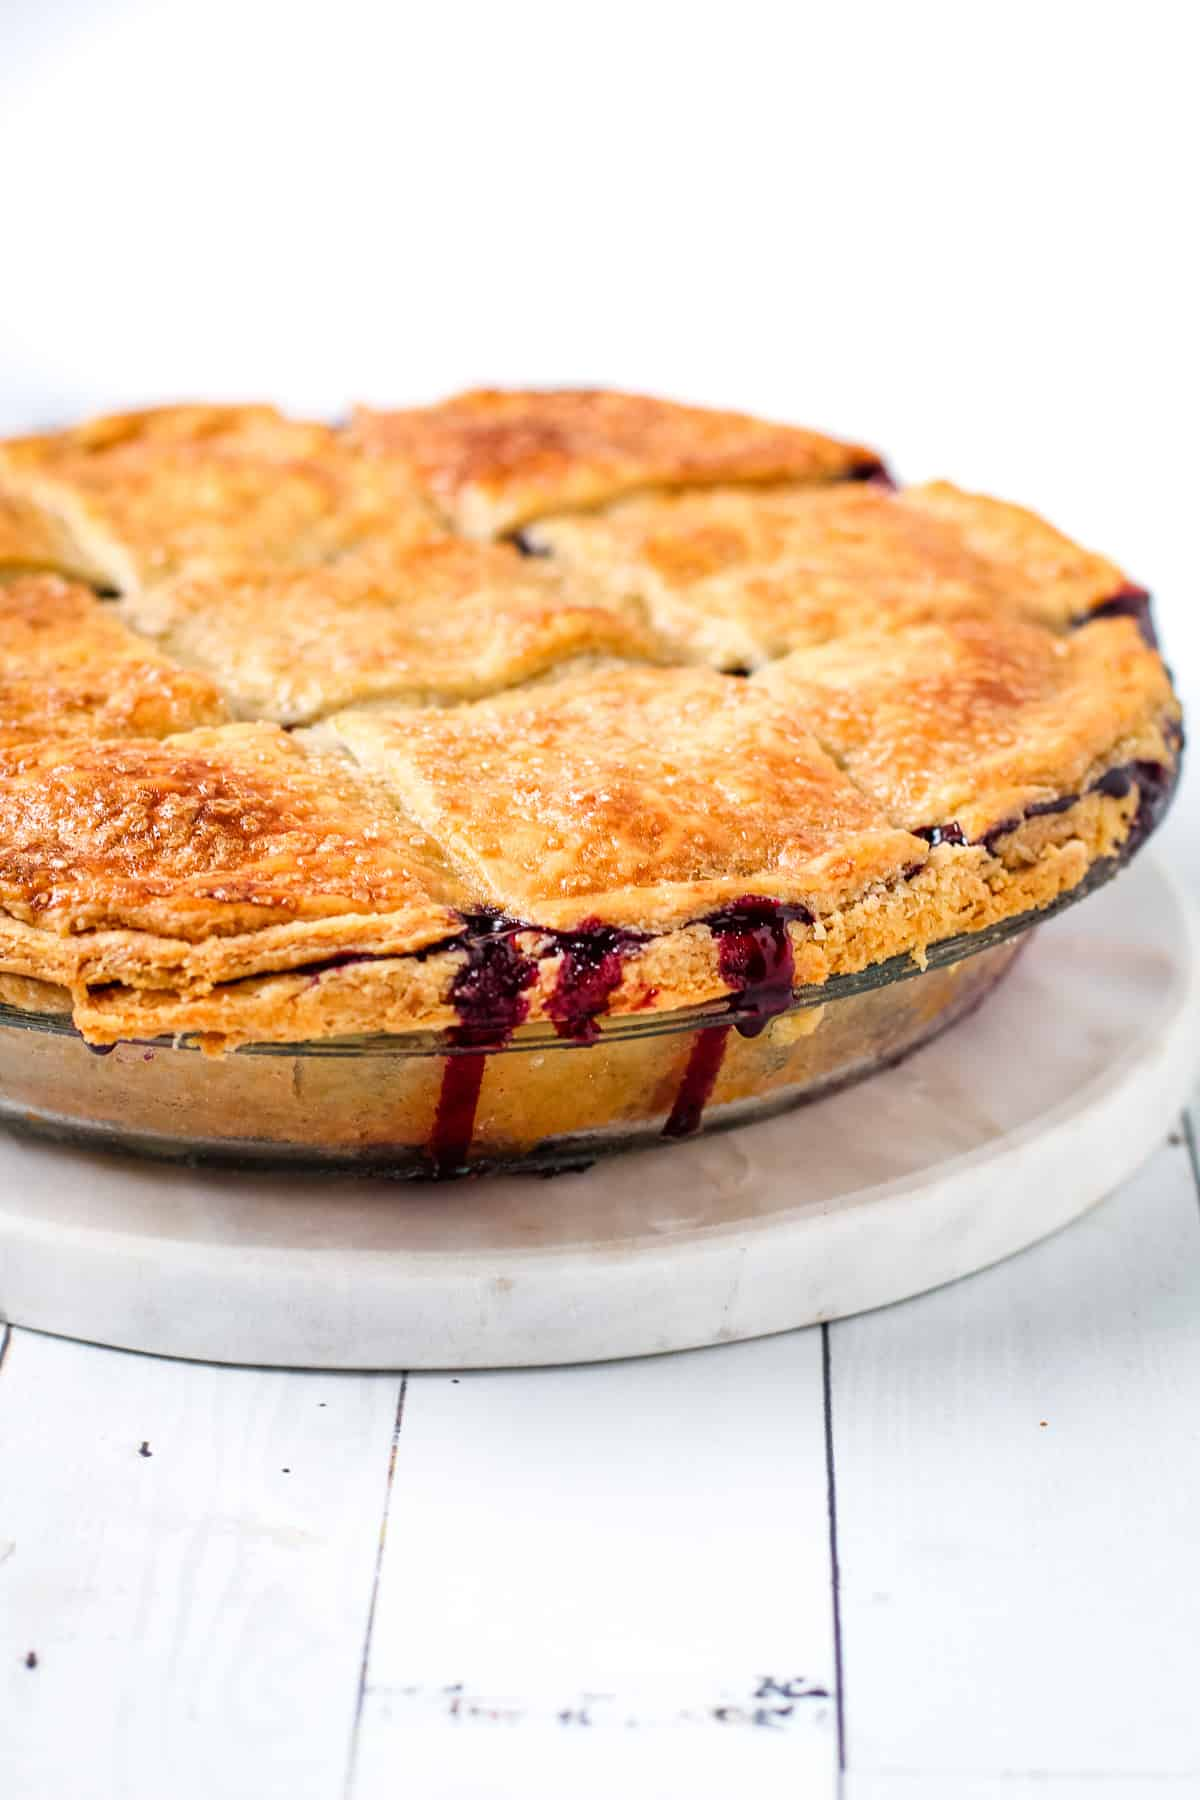 Blueberry and cranberry juices flowing out of a baked pie